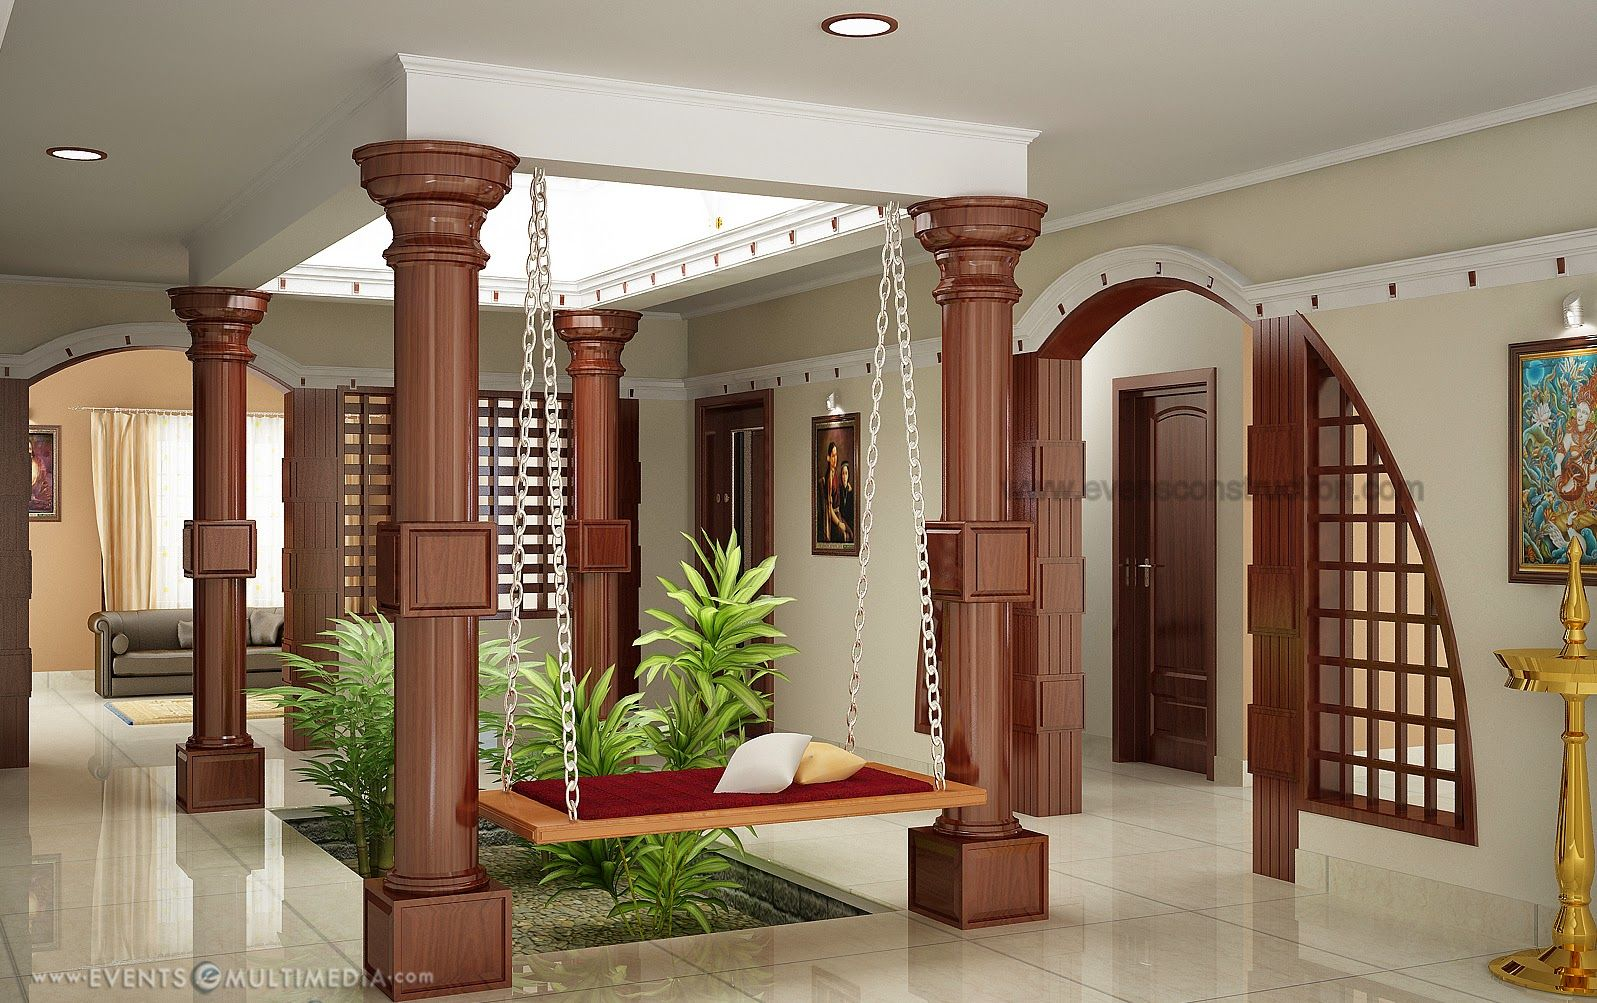 Interior design kerala google search inside and outside pinterest kerala google search - Indian house interior design pictures ...